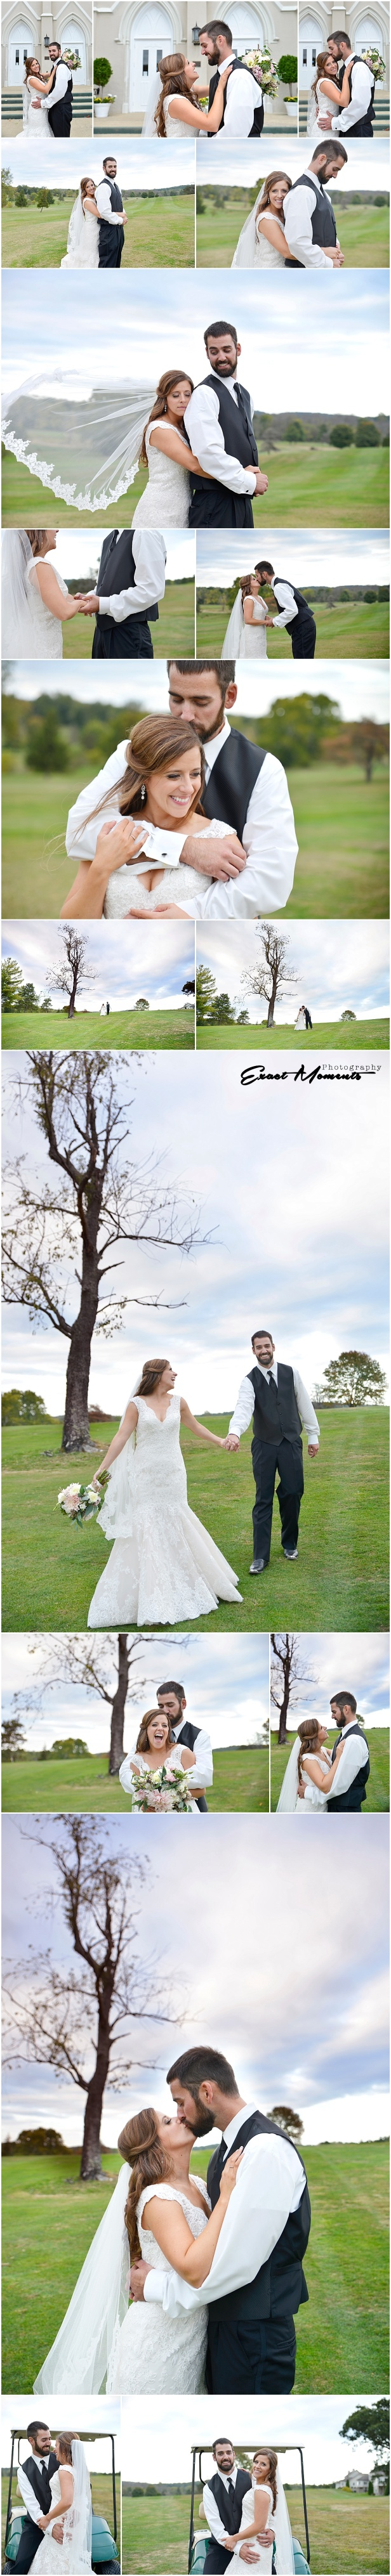 8_Wedding Photographers in Columbus Ohio